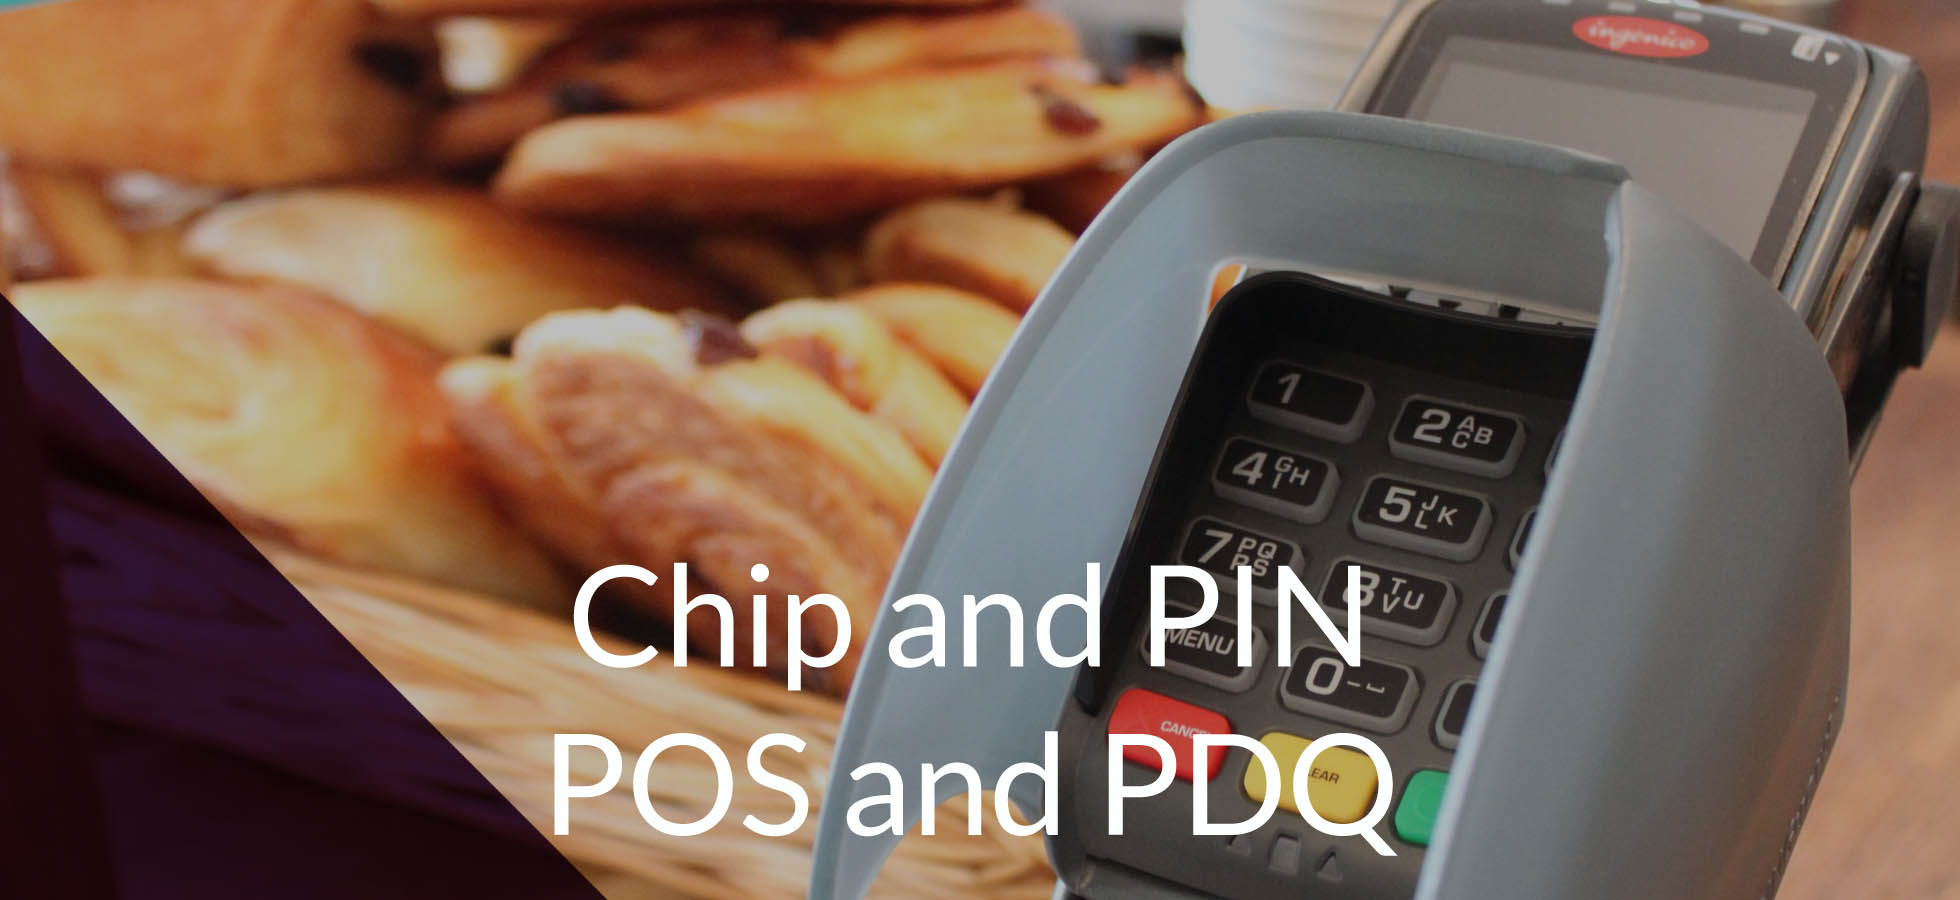 Chip and pin POS and PDQ pin protection